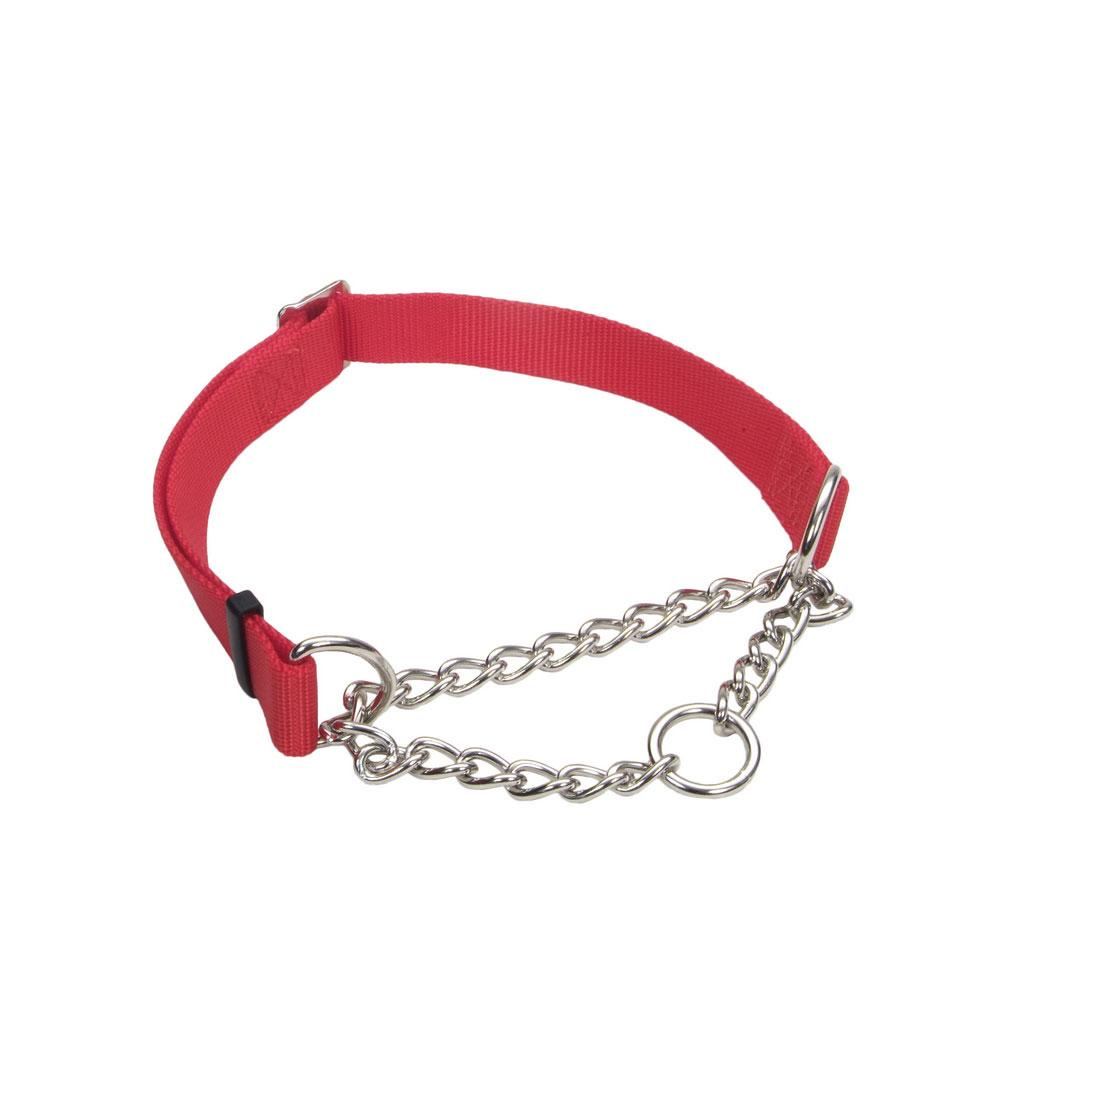 Coastal Adjustable Check Training Collar for Dogs, Red Image